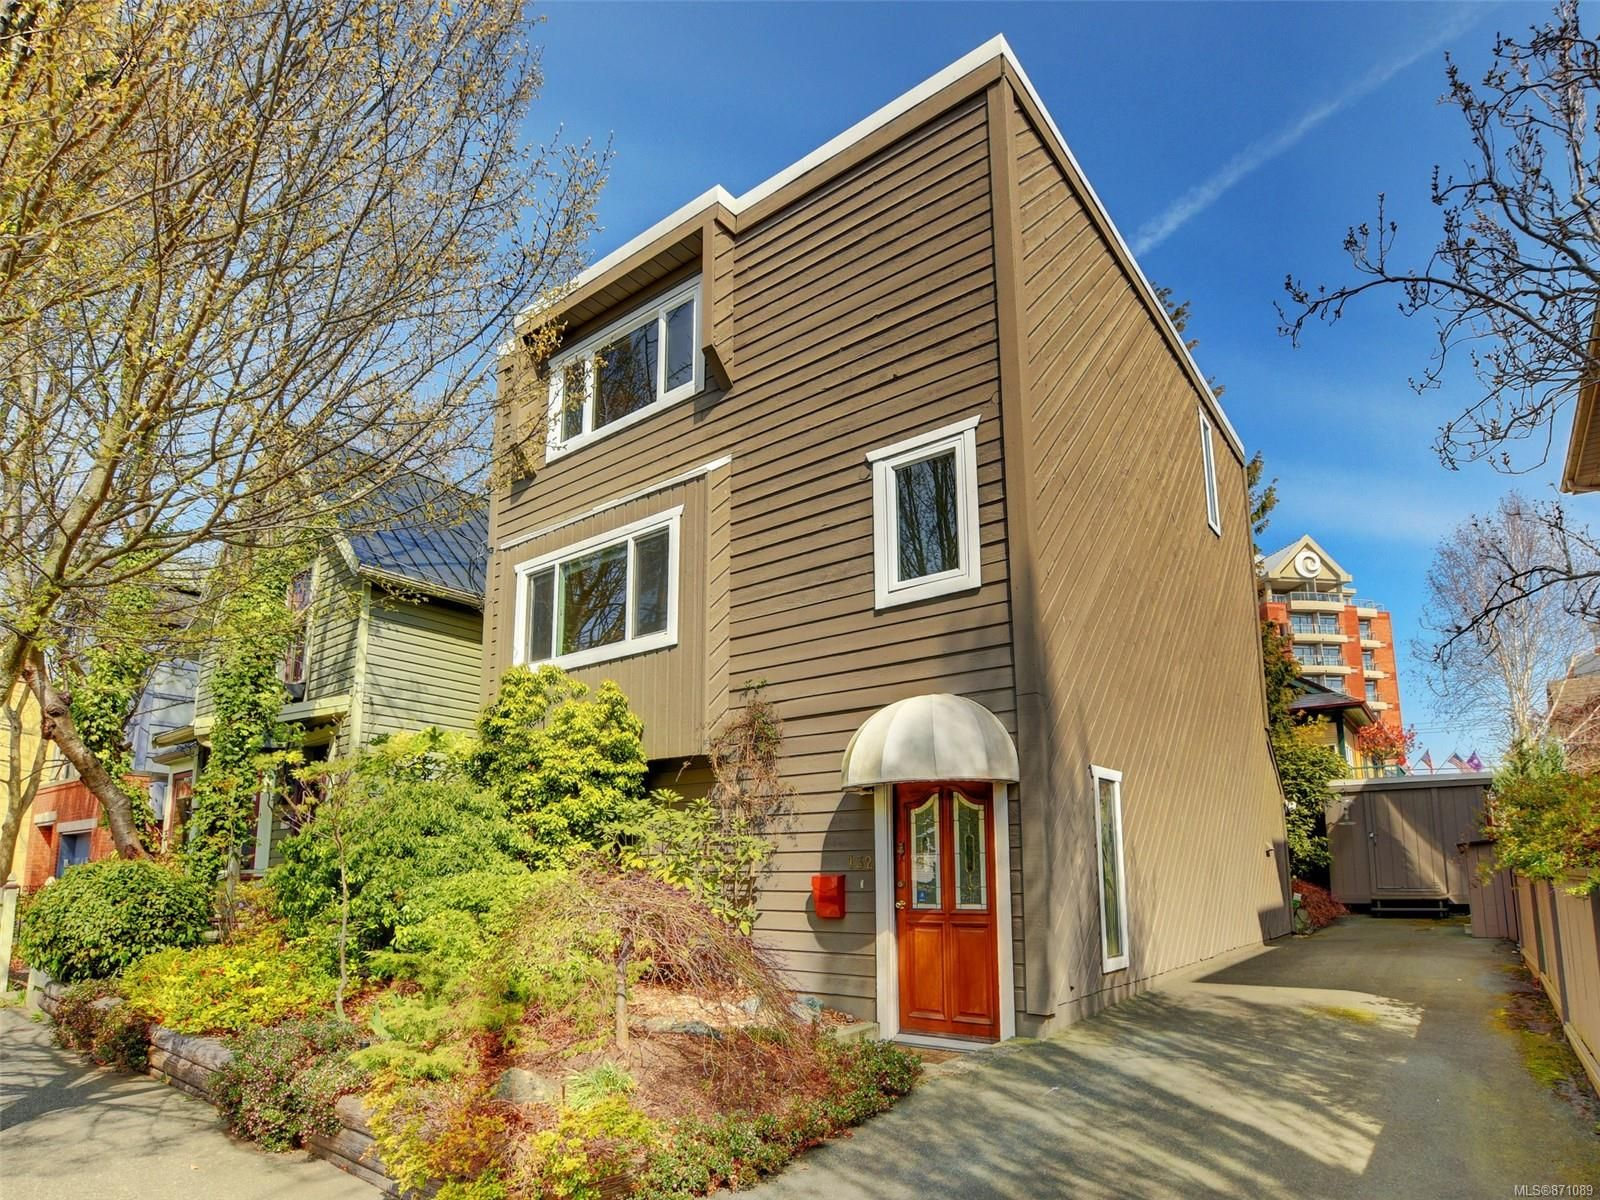 Main Photo: 132 Superior St in : Vi James Bay House for sale (Victoria)  : MLS®# 871089